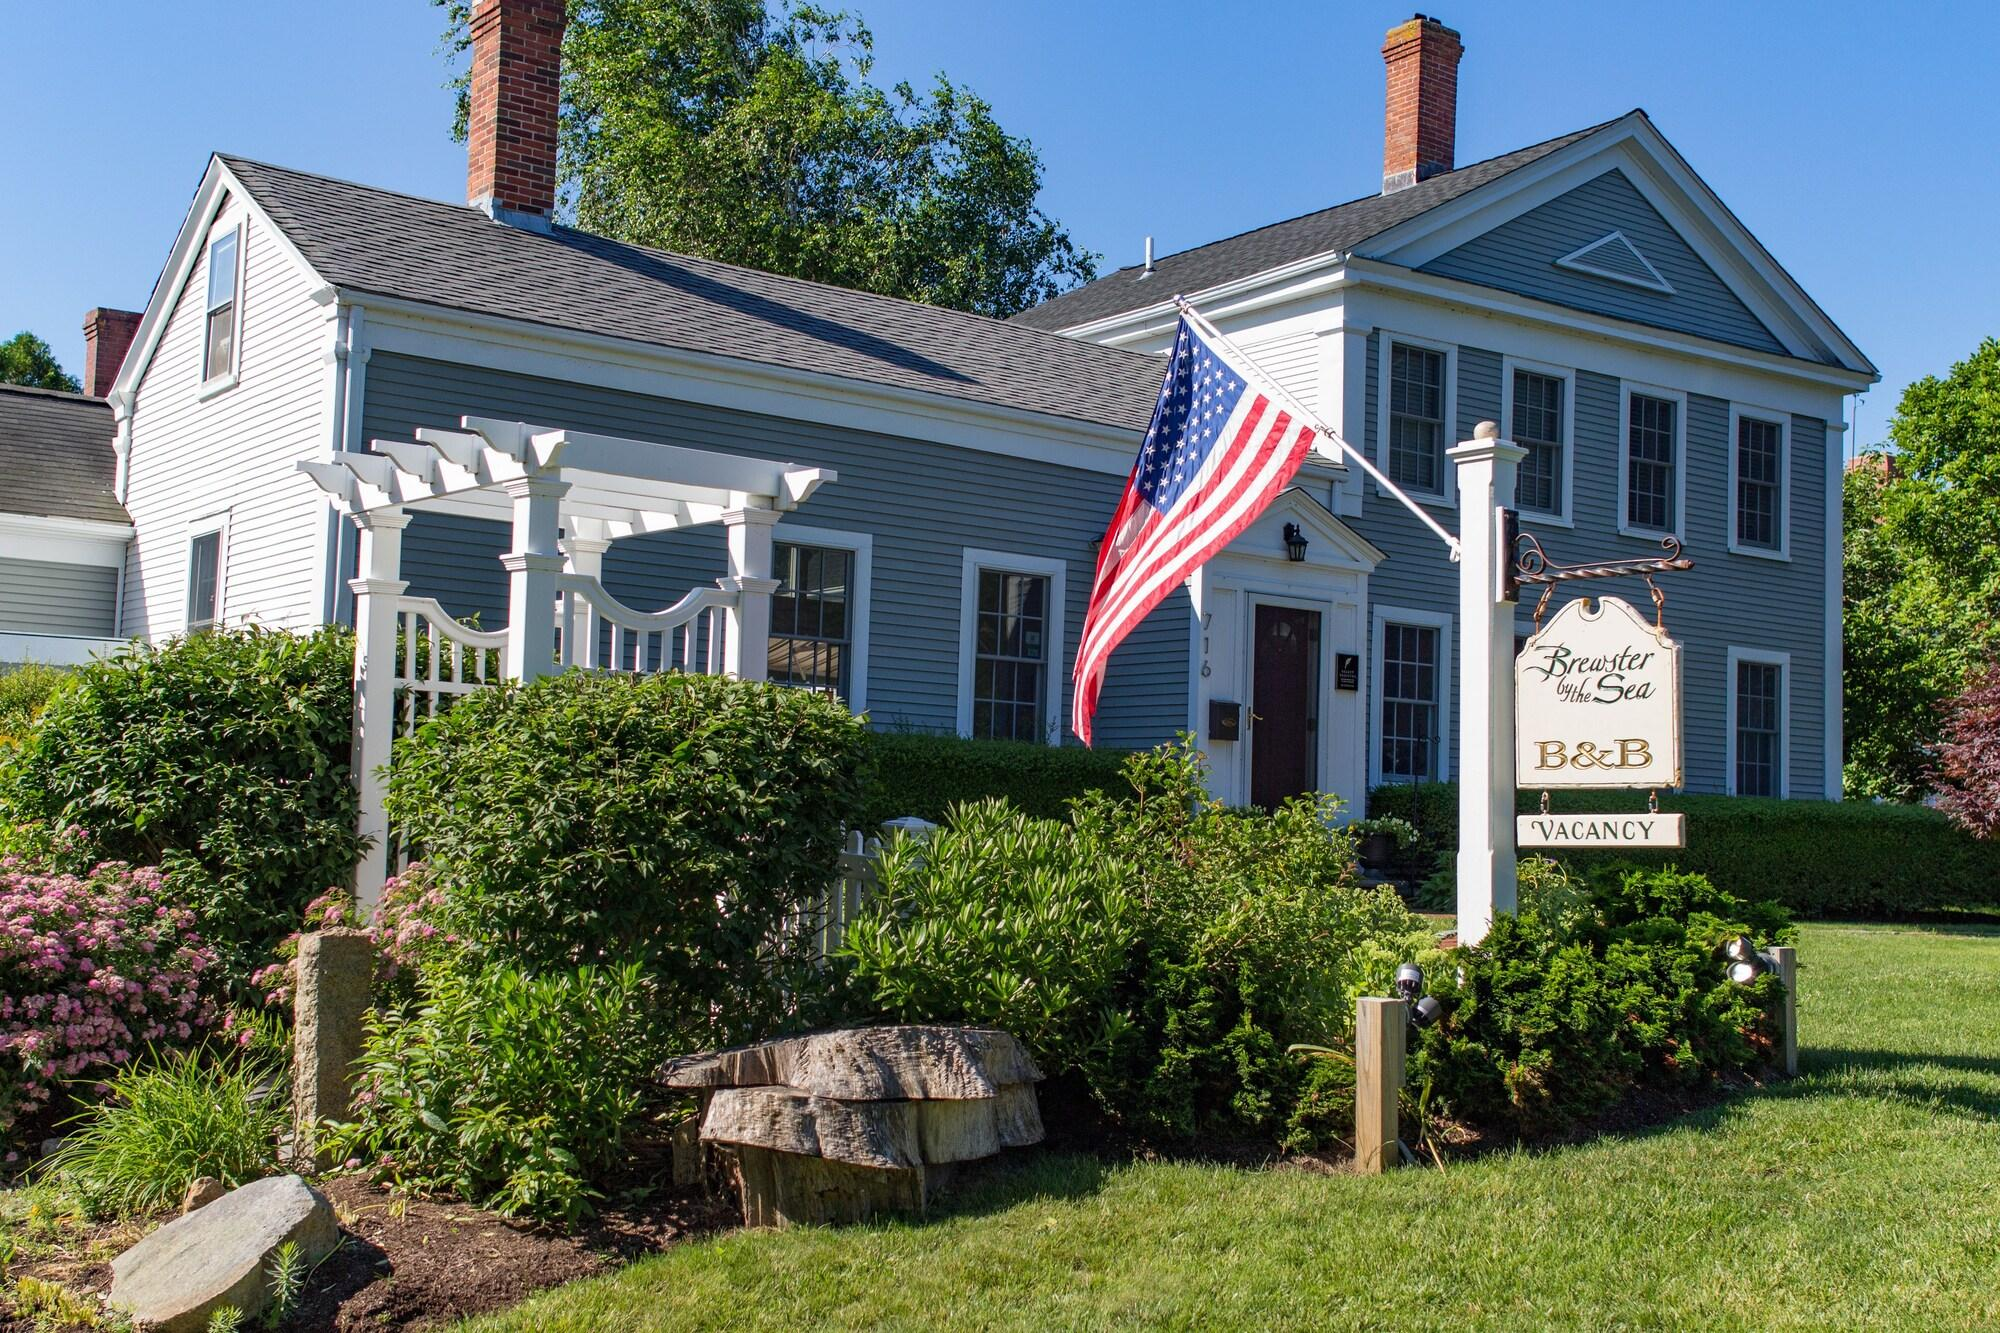 20 Best Hotels In Brewster From